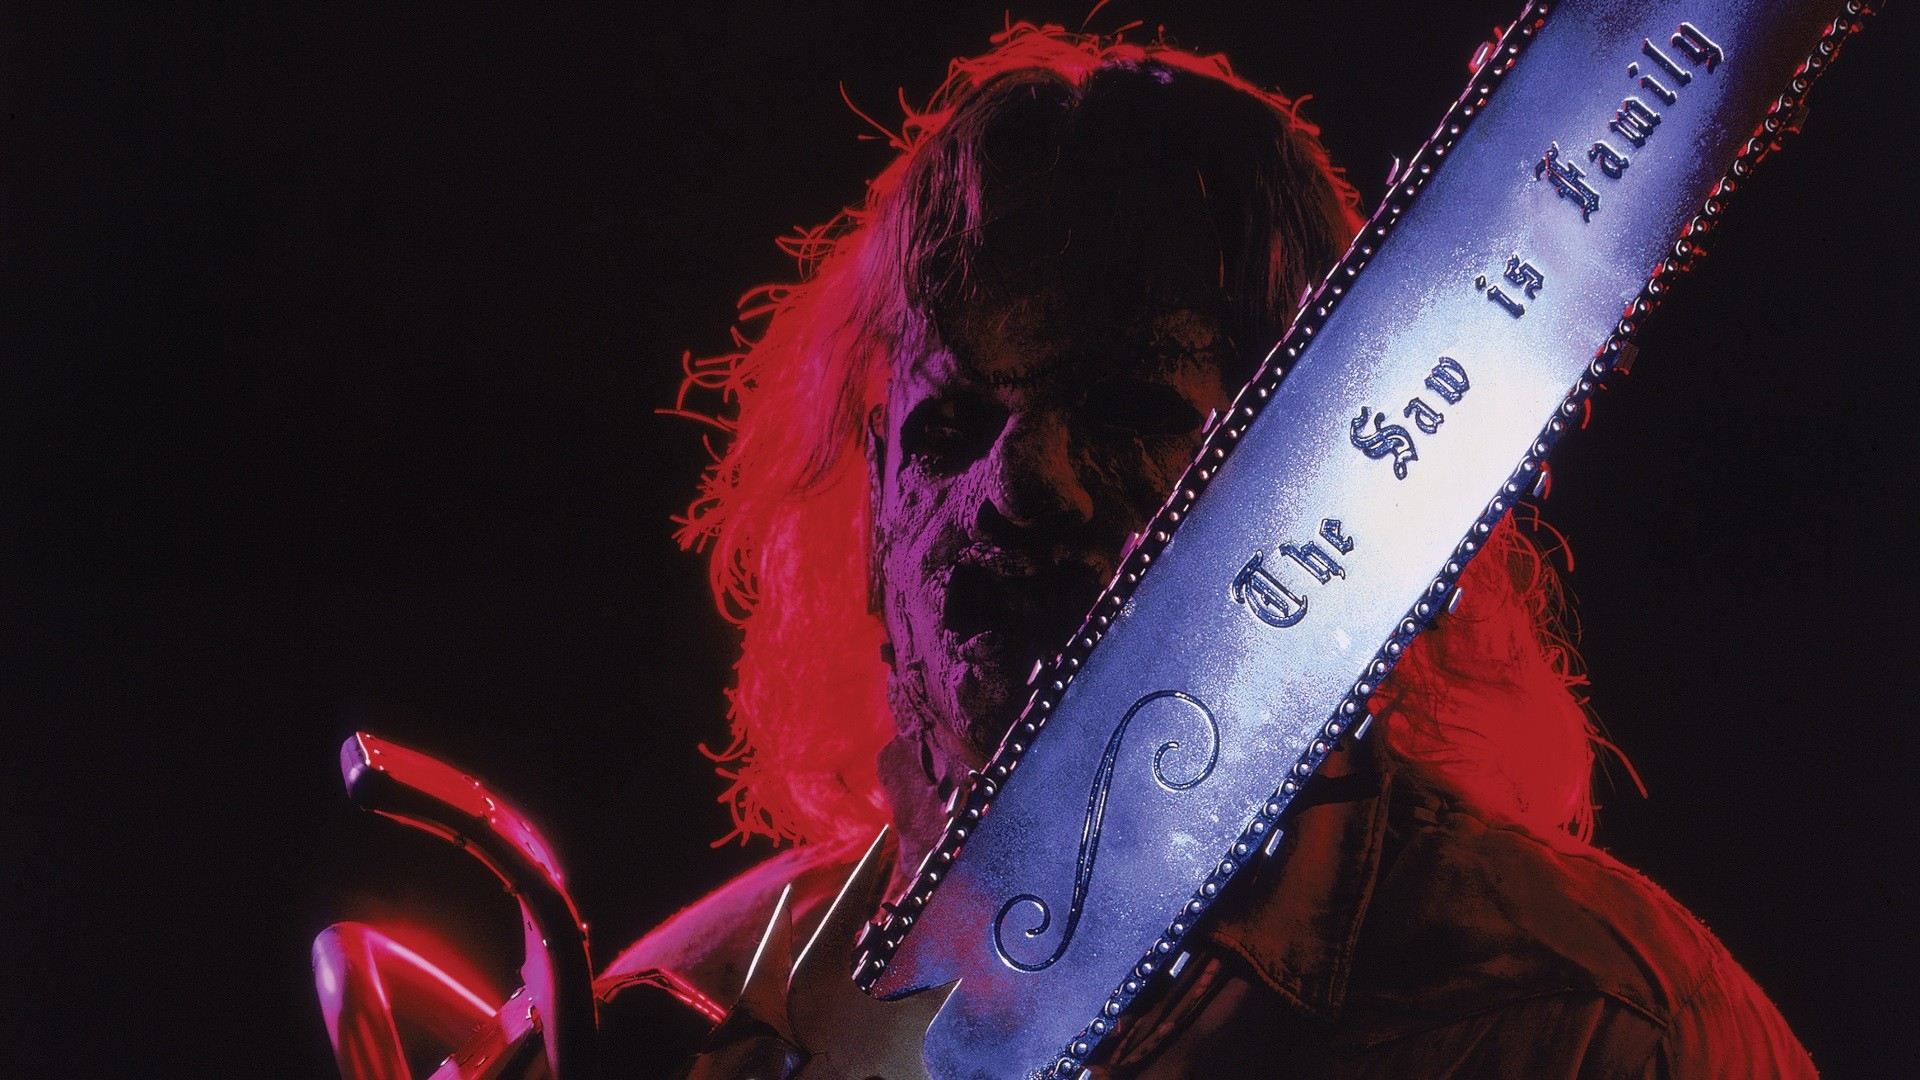 Res: 1920x1080, Movie - Leatherface: Texas Chainsaw Massacre III Wallpaper